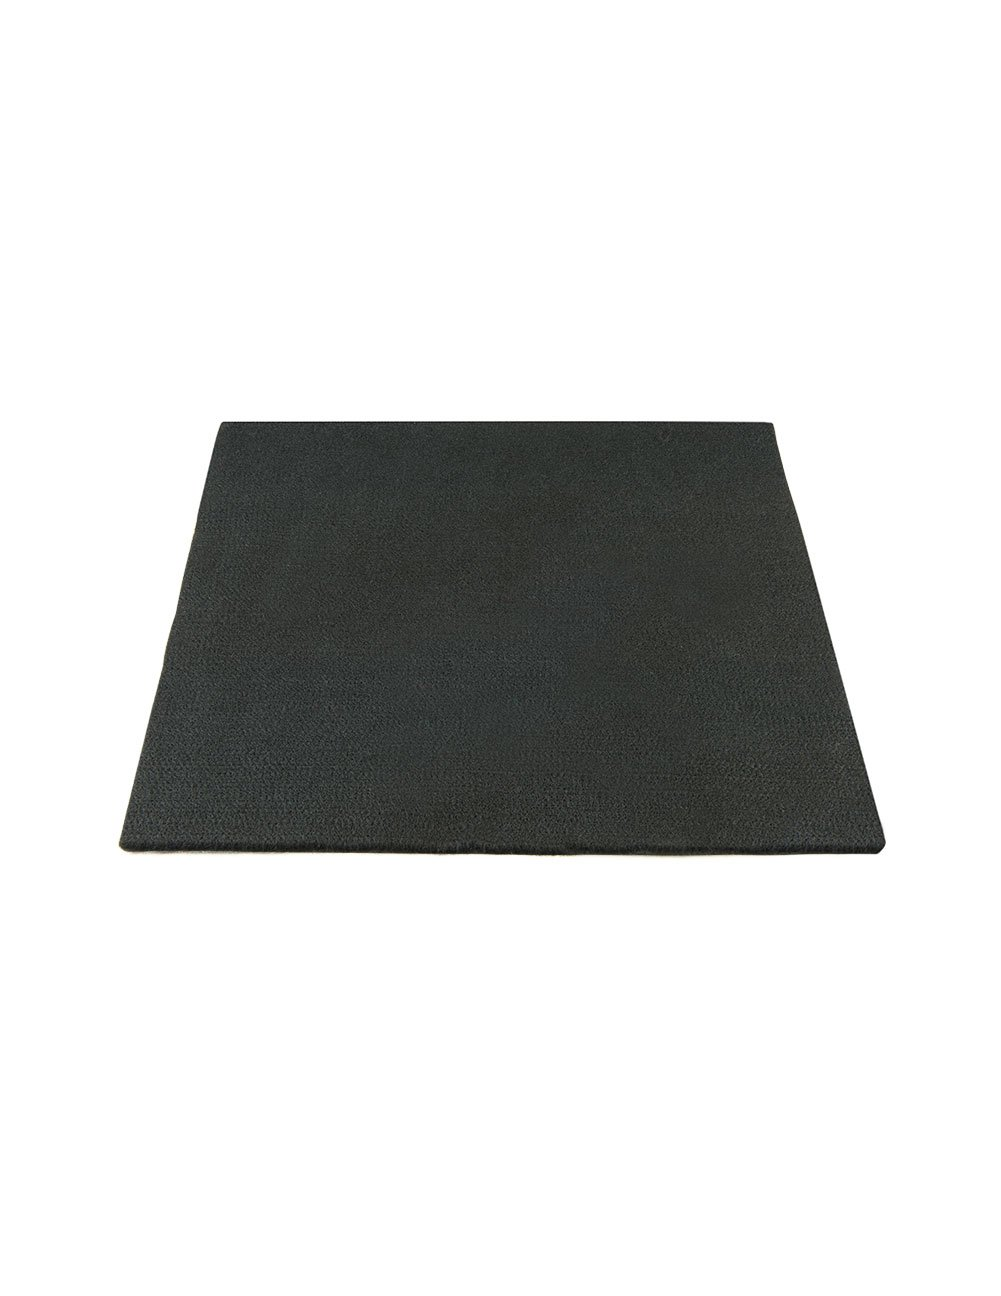 improvement interior fireproof popular with ideas mats cool design awesome amazing at simple home fireplace mat